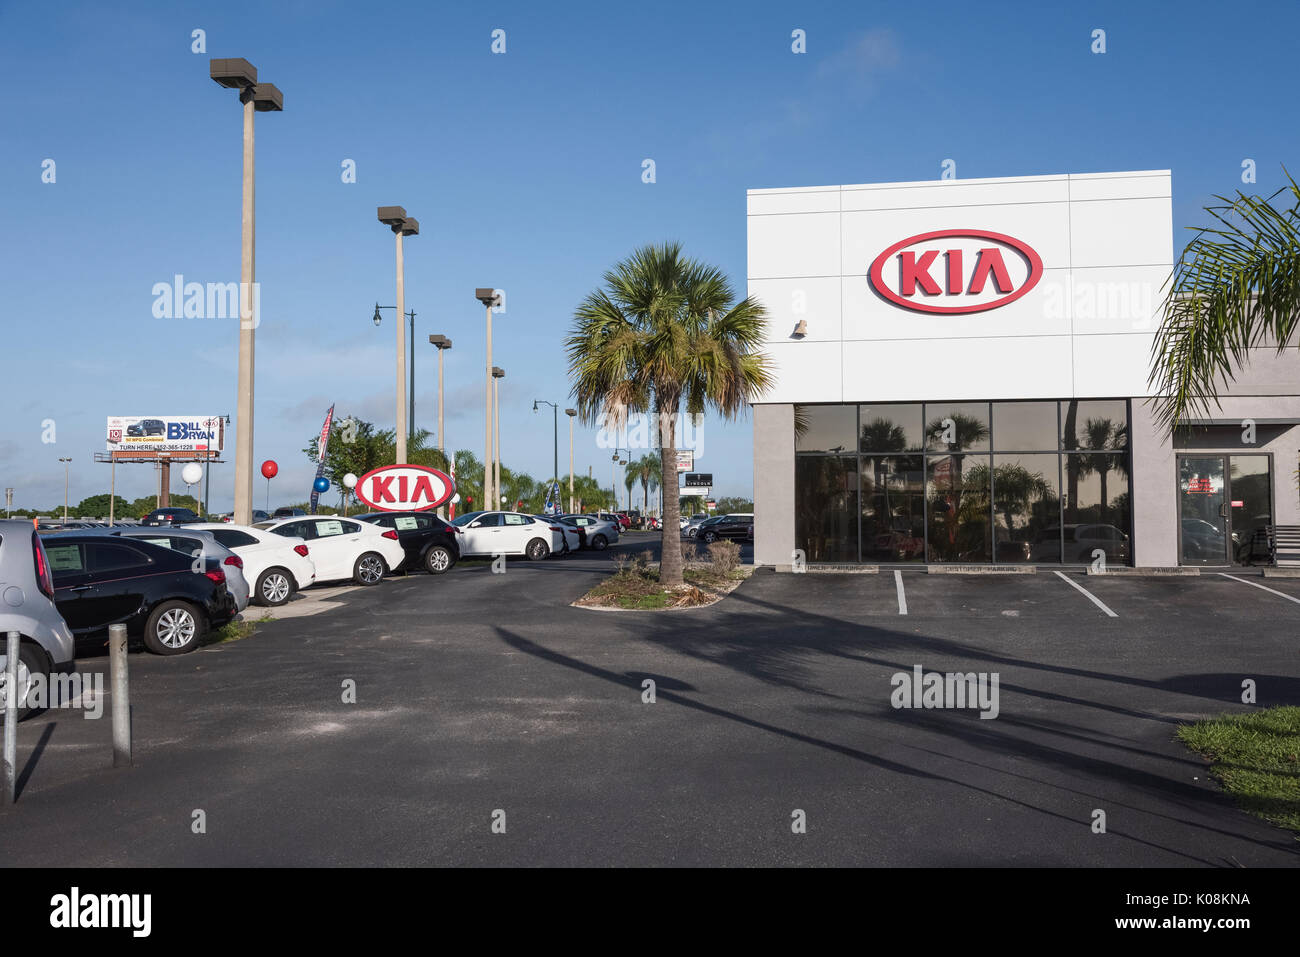 Kia dealership stock photos kia dealership stock images for Kia motor company usa